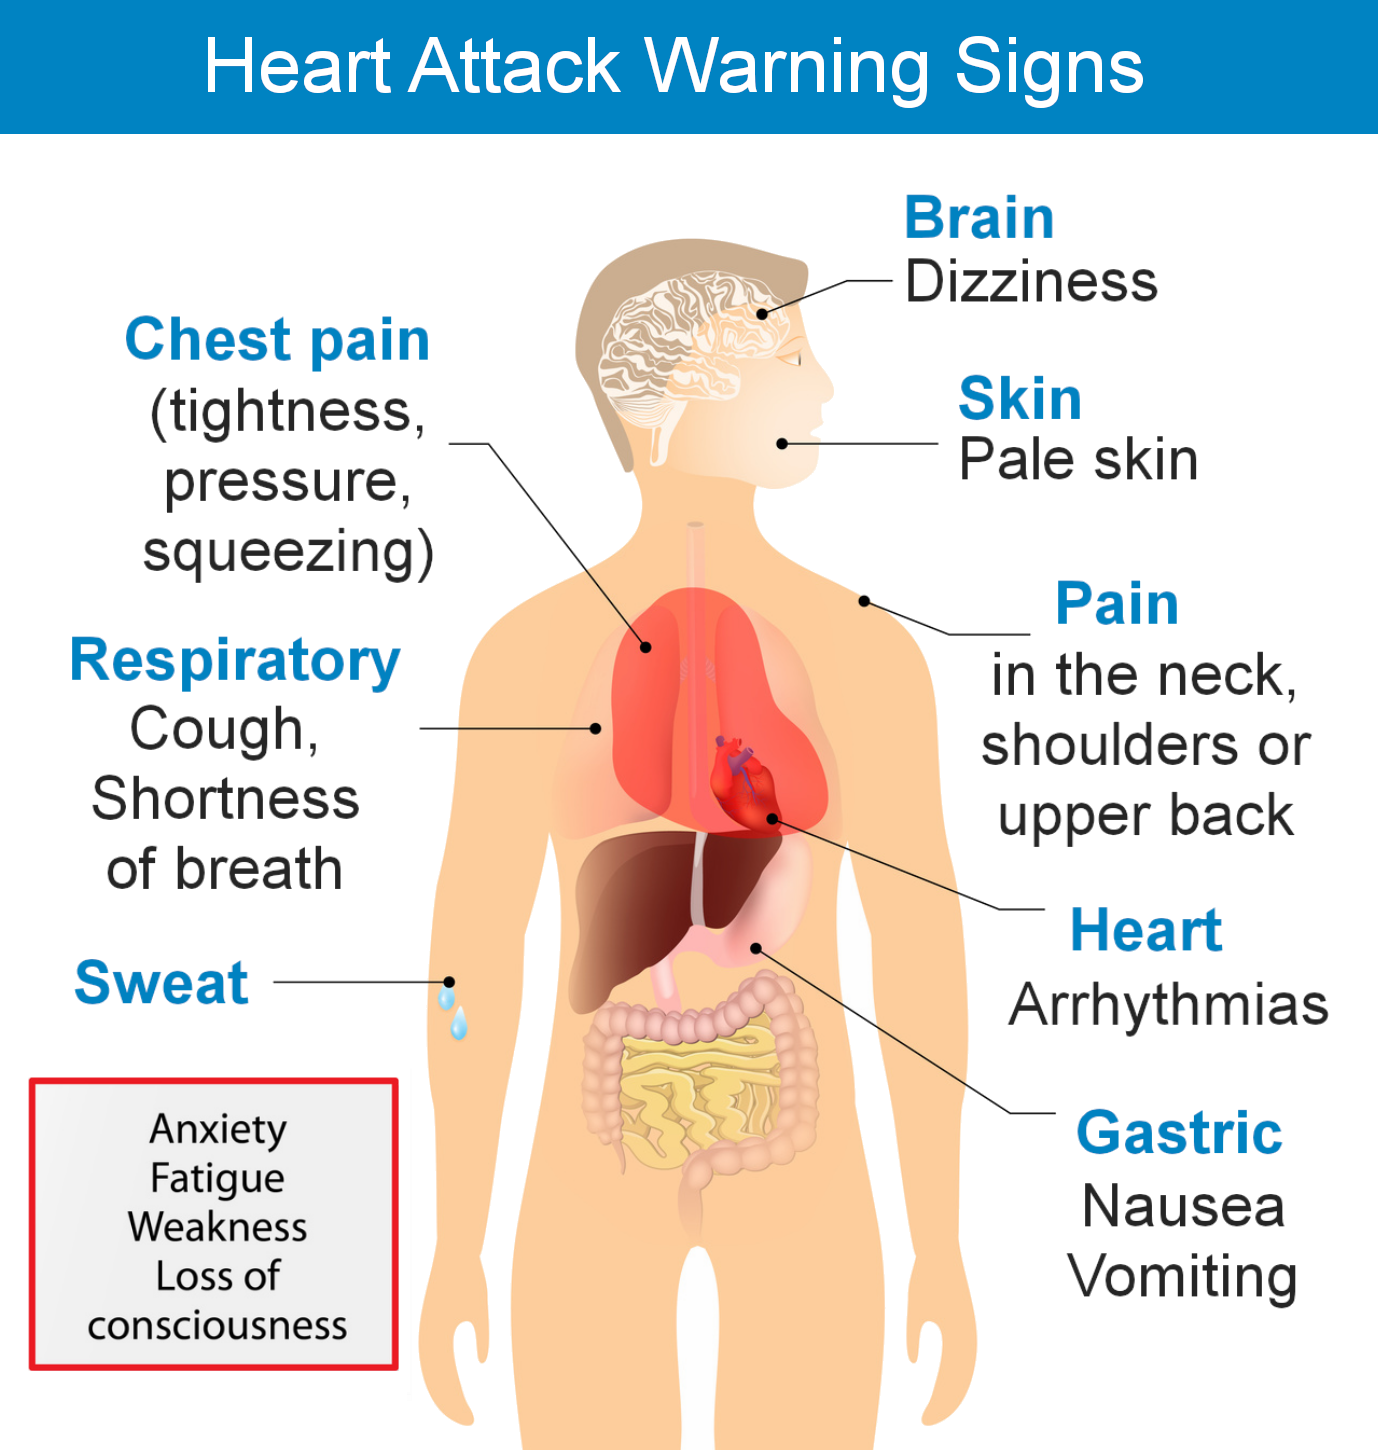 Heart standard first aid online certification course heart attack heart attack symptoms heart attack warning signs and care heart attack 1betcityfo Images